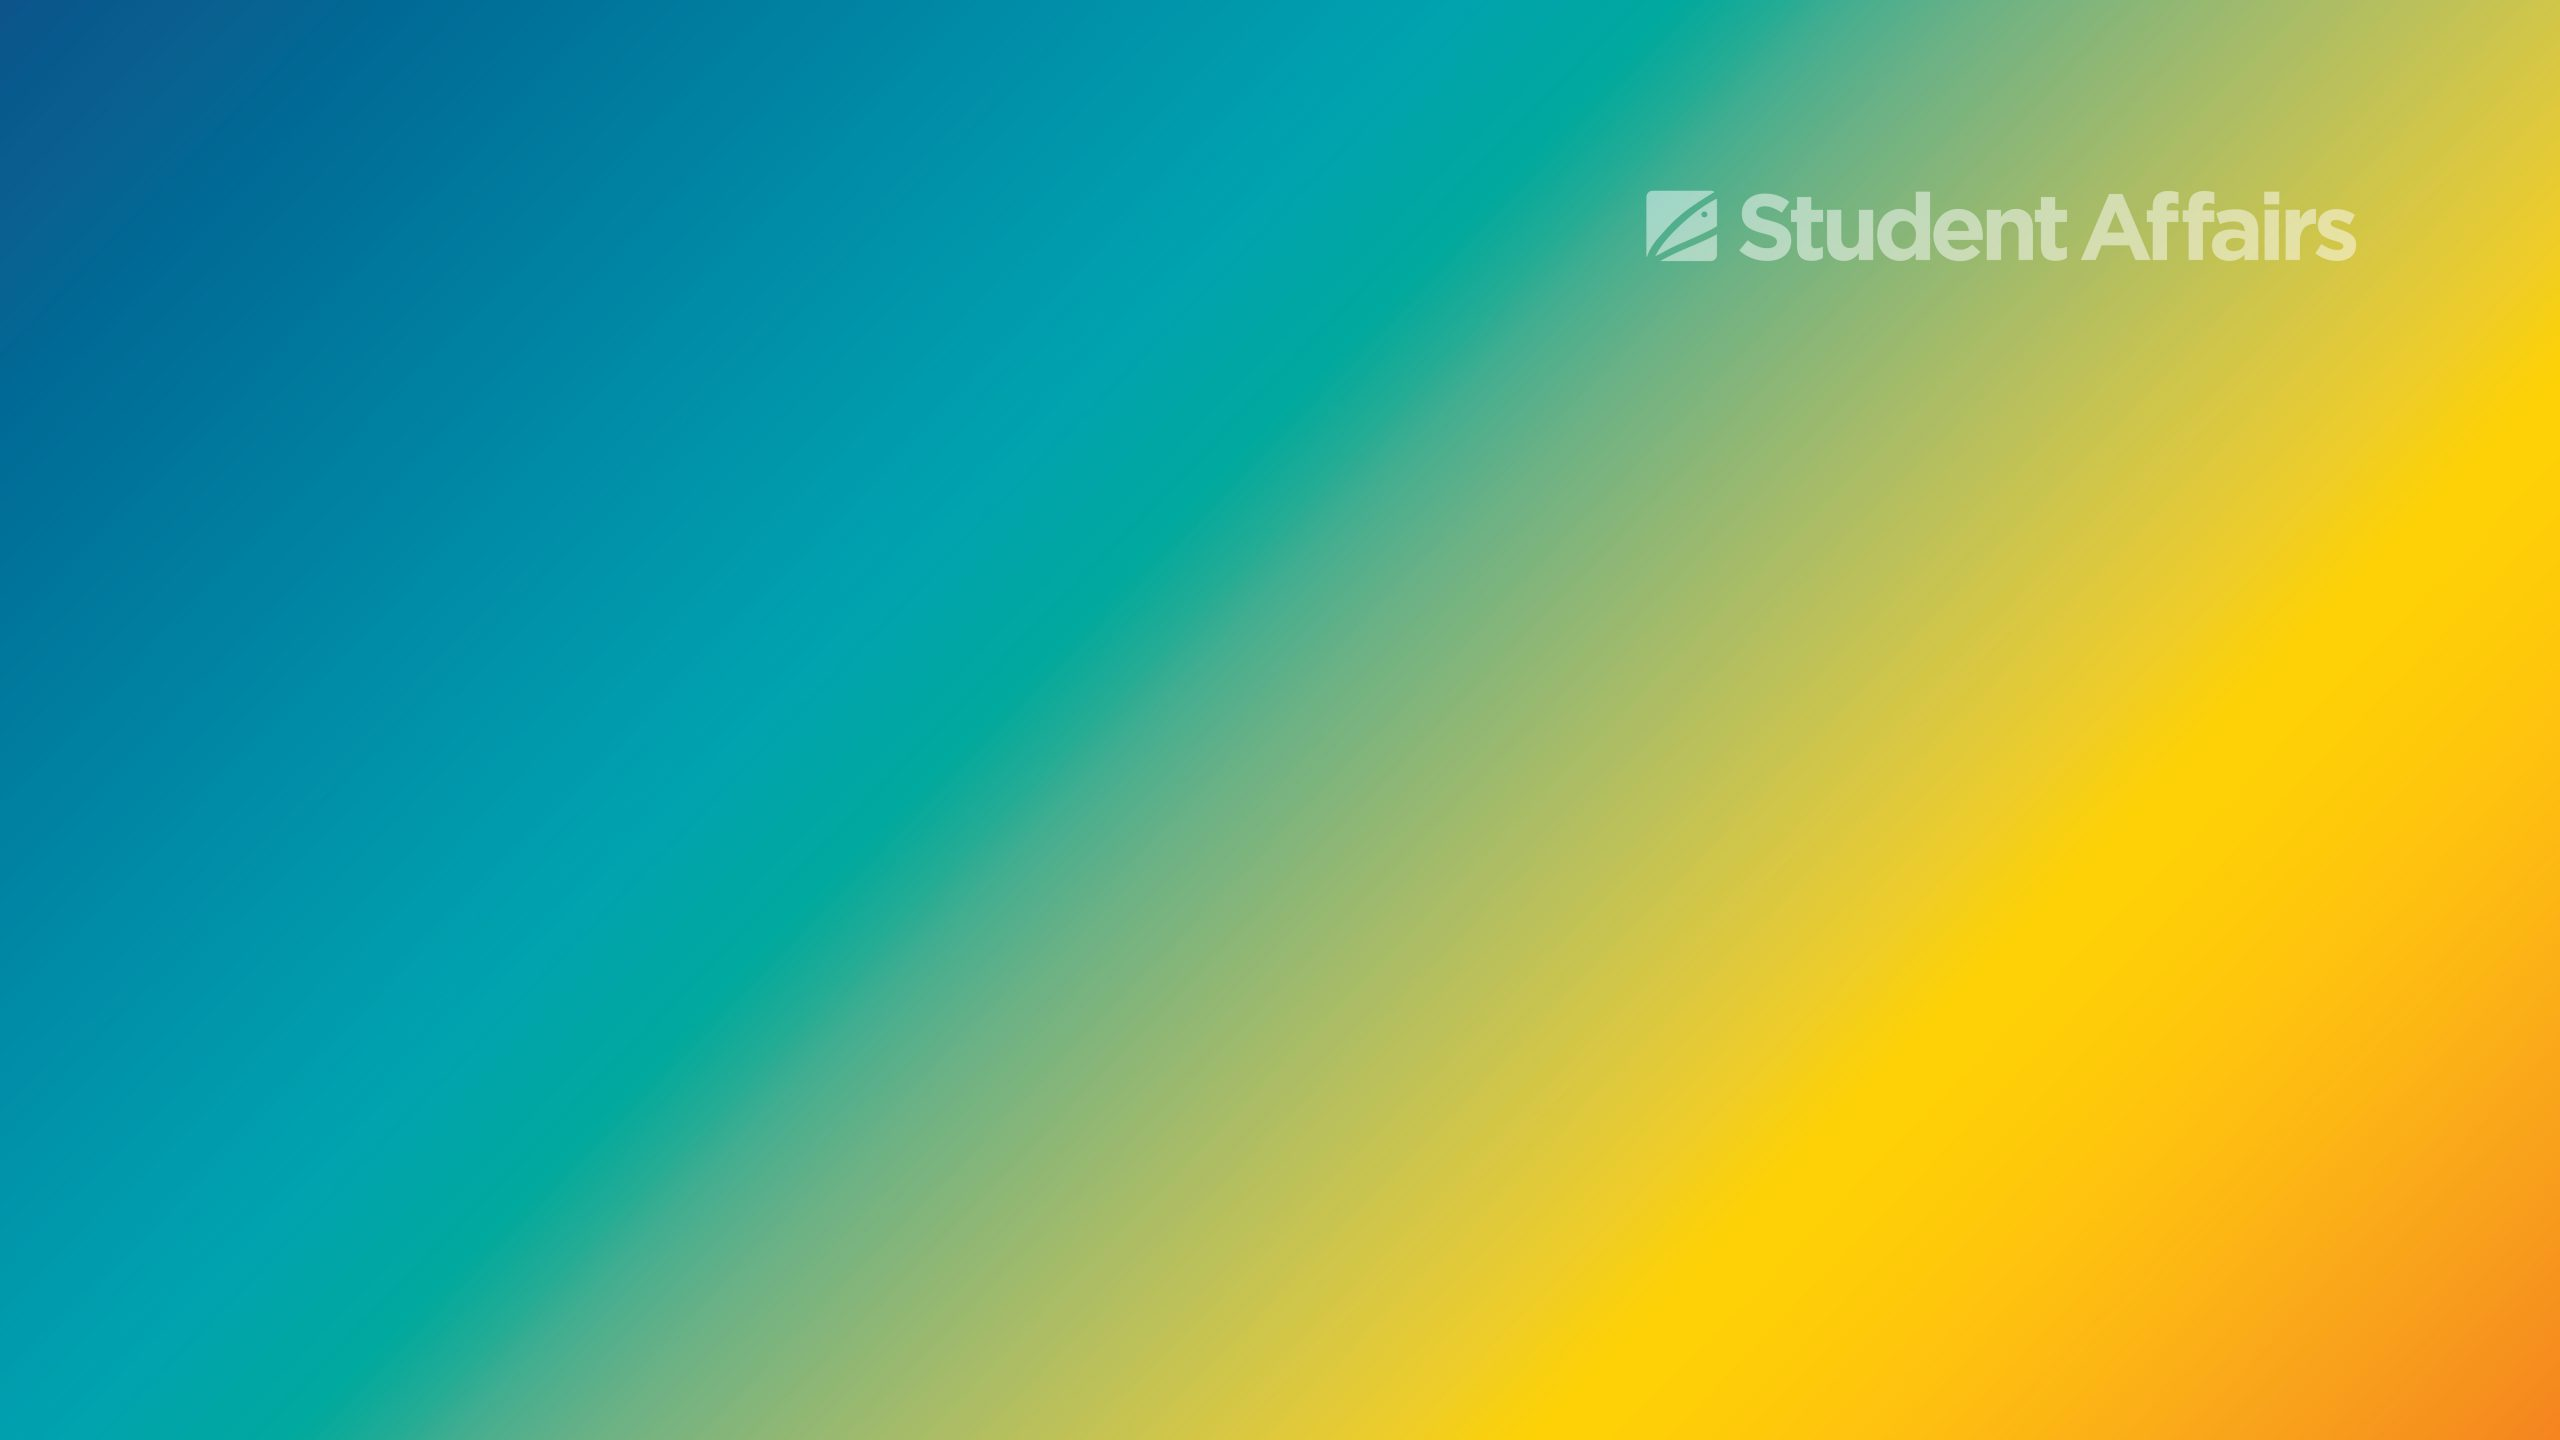 Blue gold gradient background with transparent white Student Affairs graphic in upper right corner